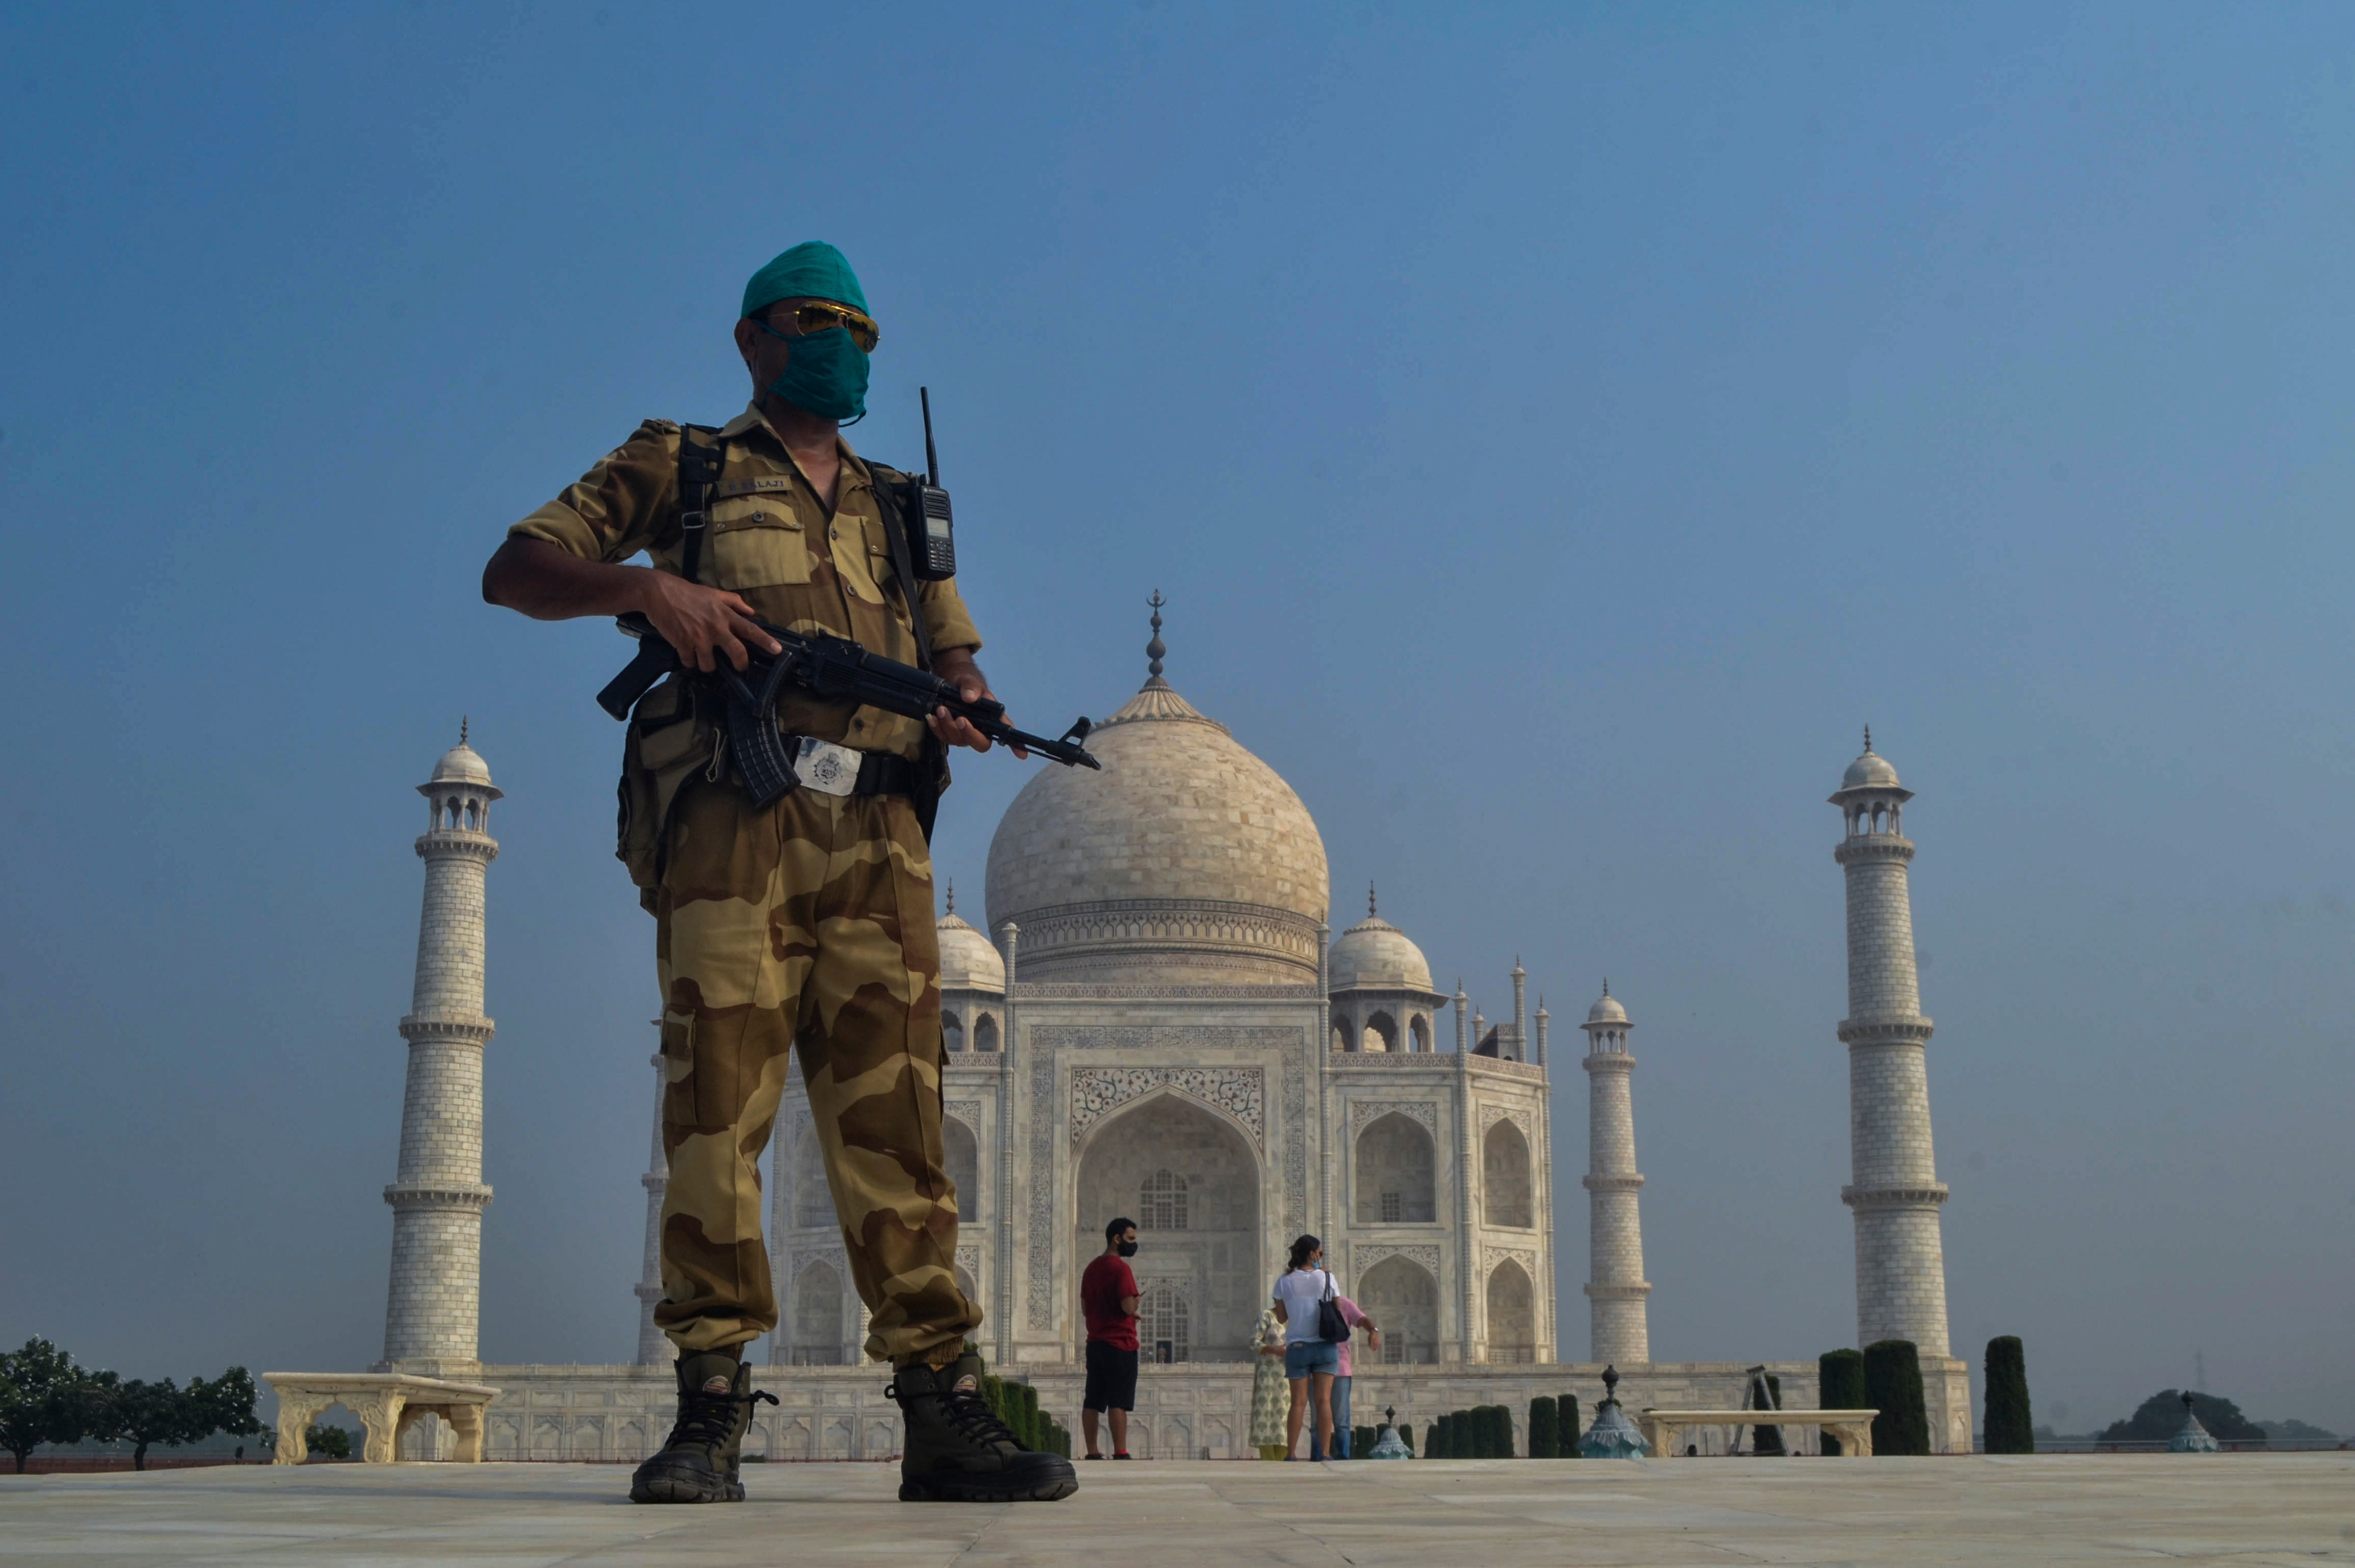 The Taj Mahal has reopened after a six-month closure in Agra, India.